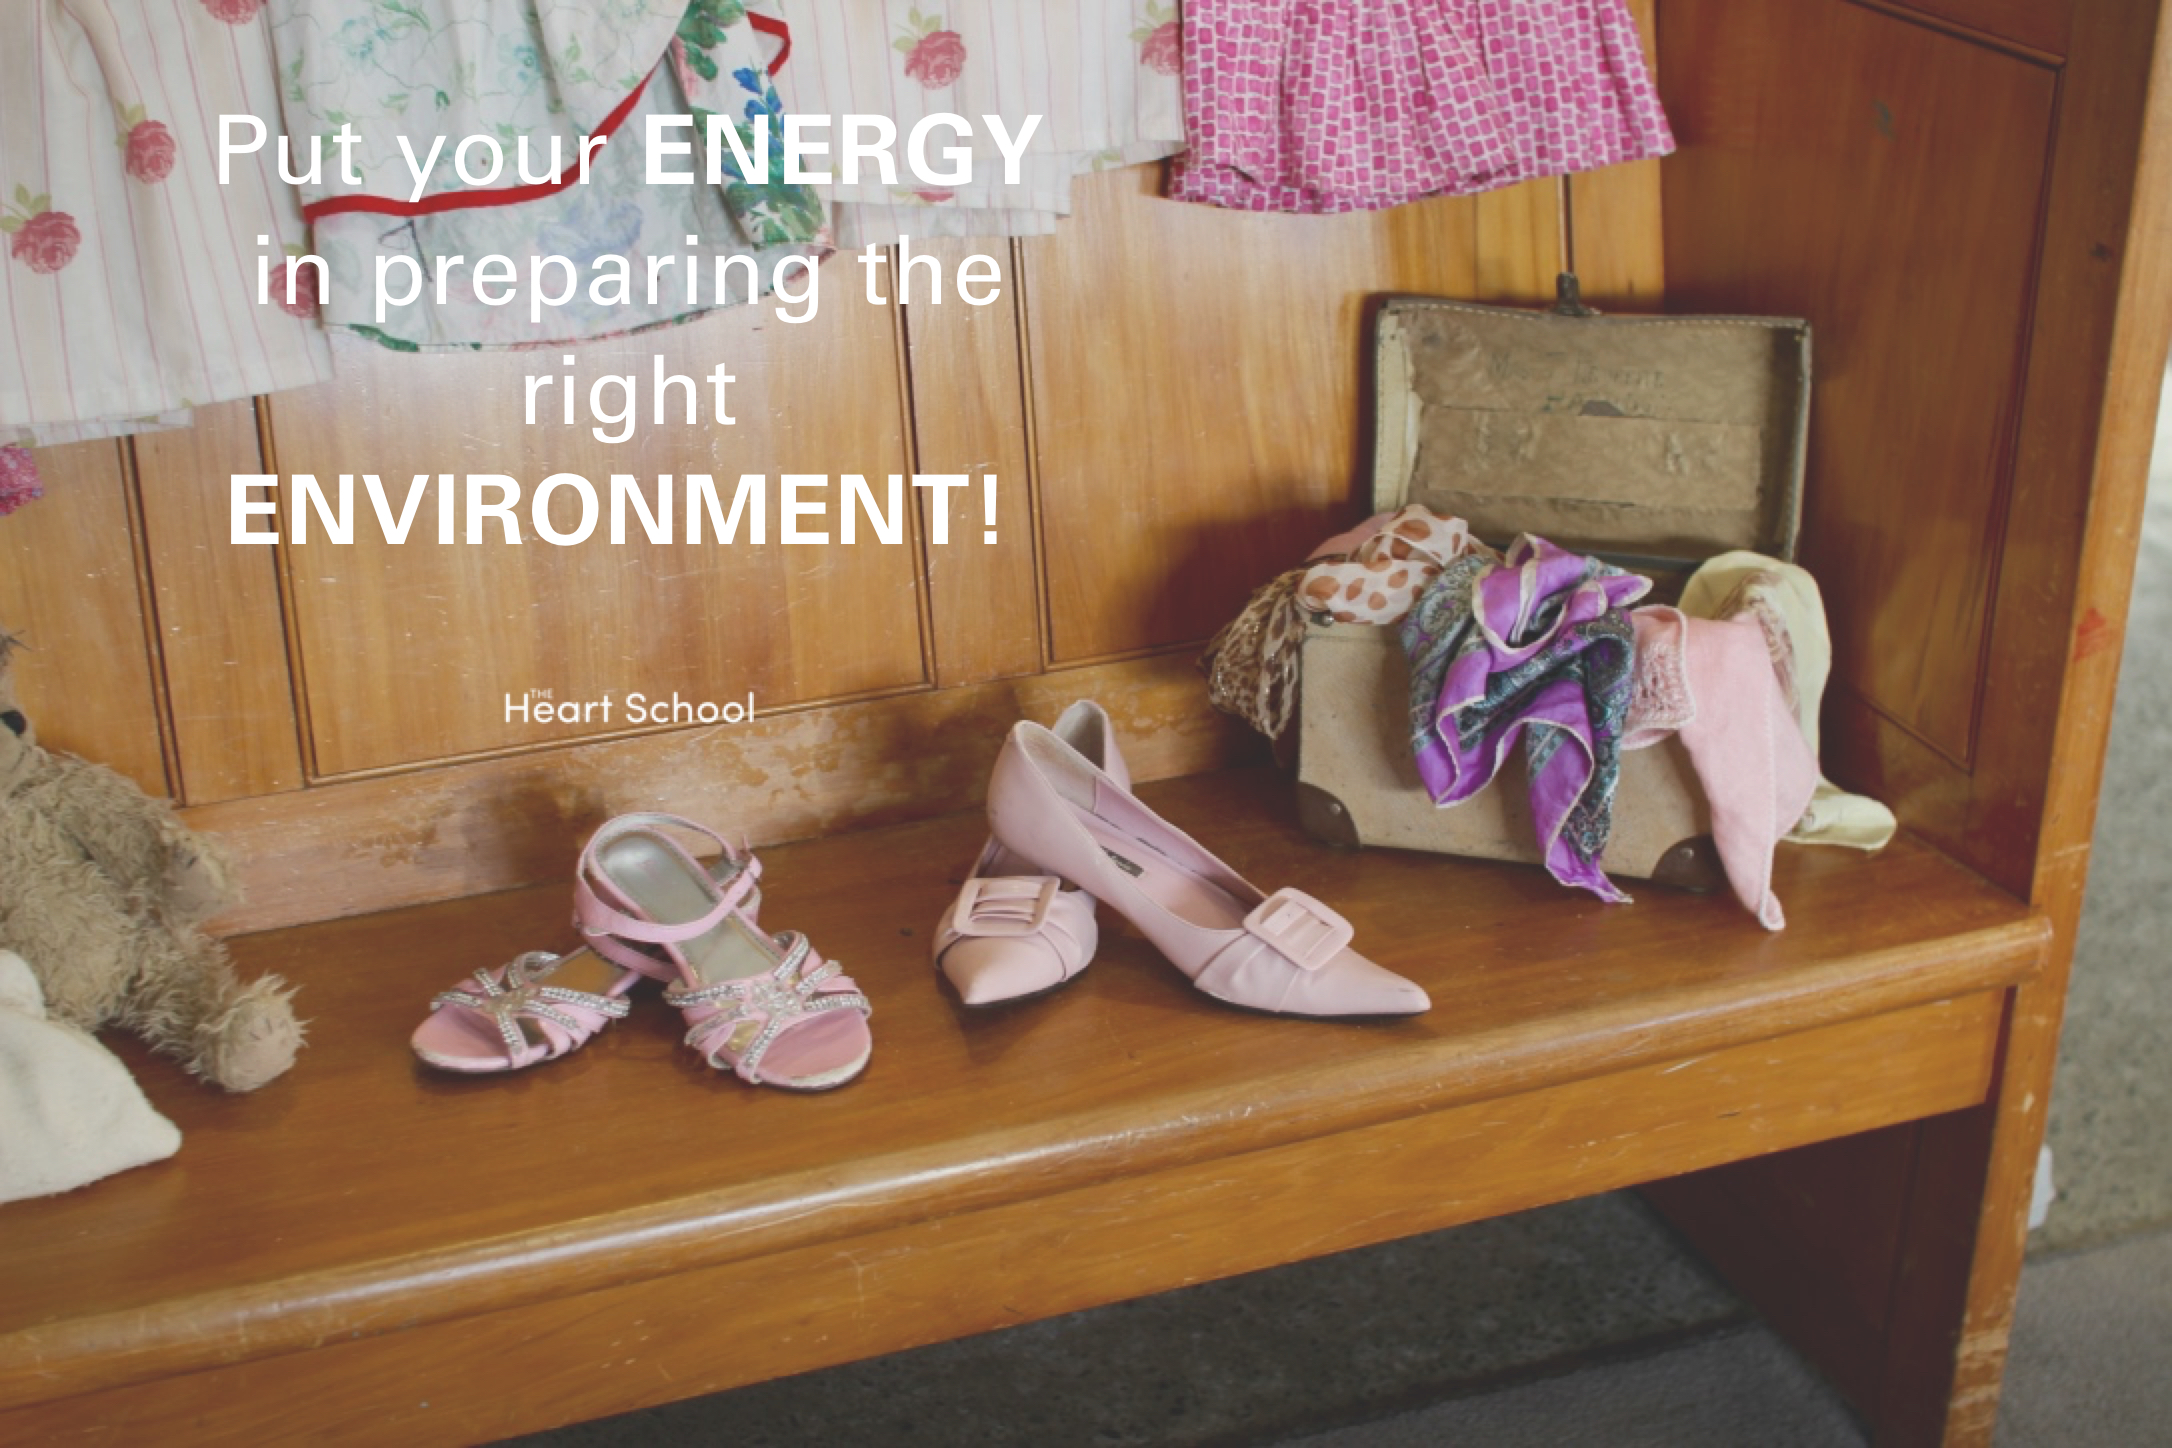 If you have faith in your environment you can have faith in your children! We really can't say it enough. Have faith. Trust. Children know what they need. They can, and they will, learn. They will make use of the environment we provide for them.